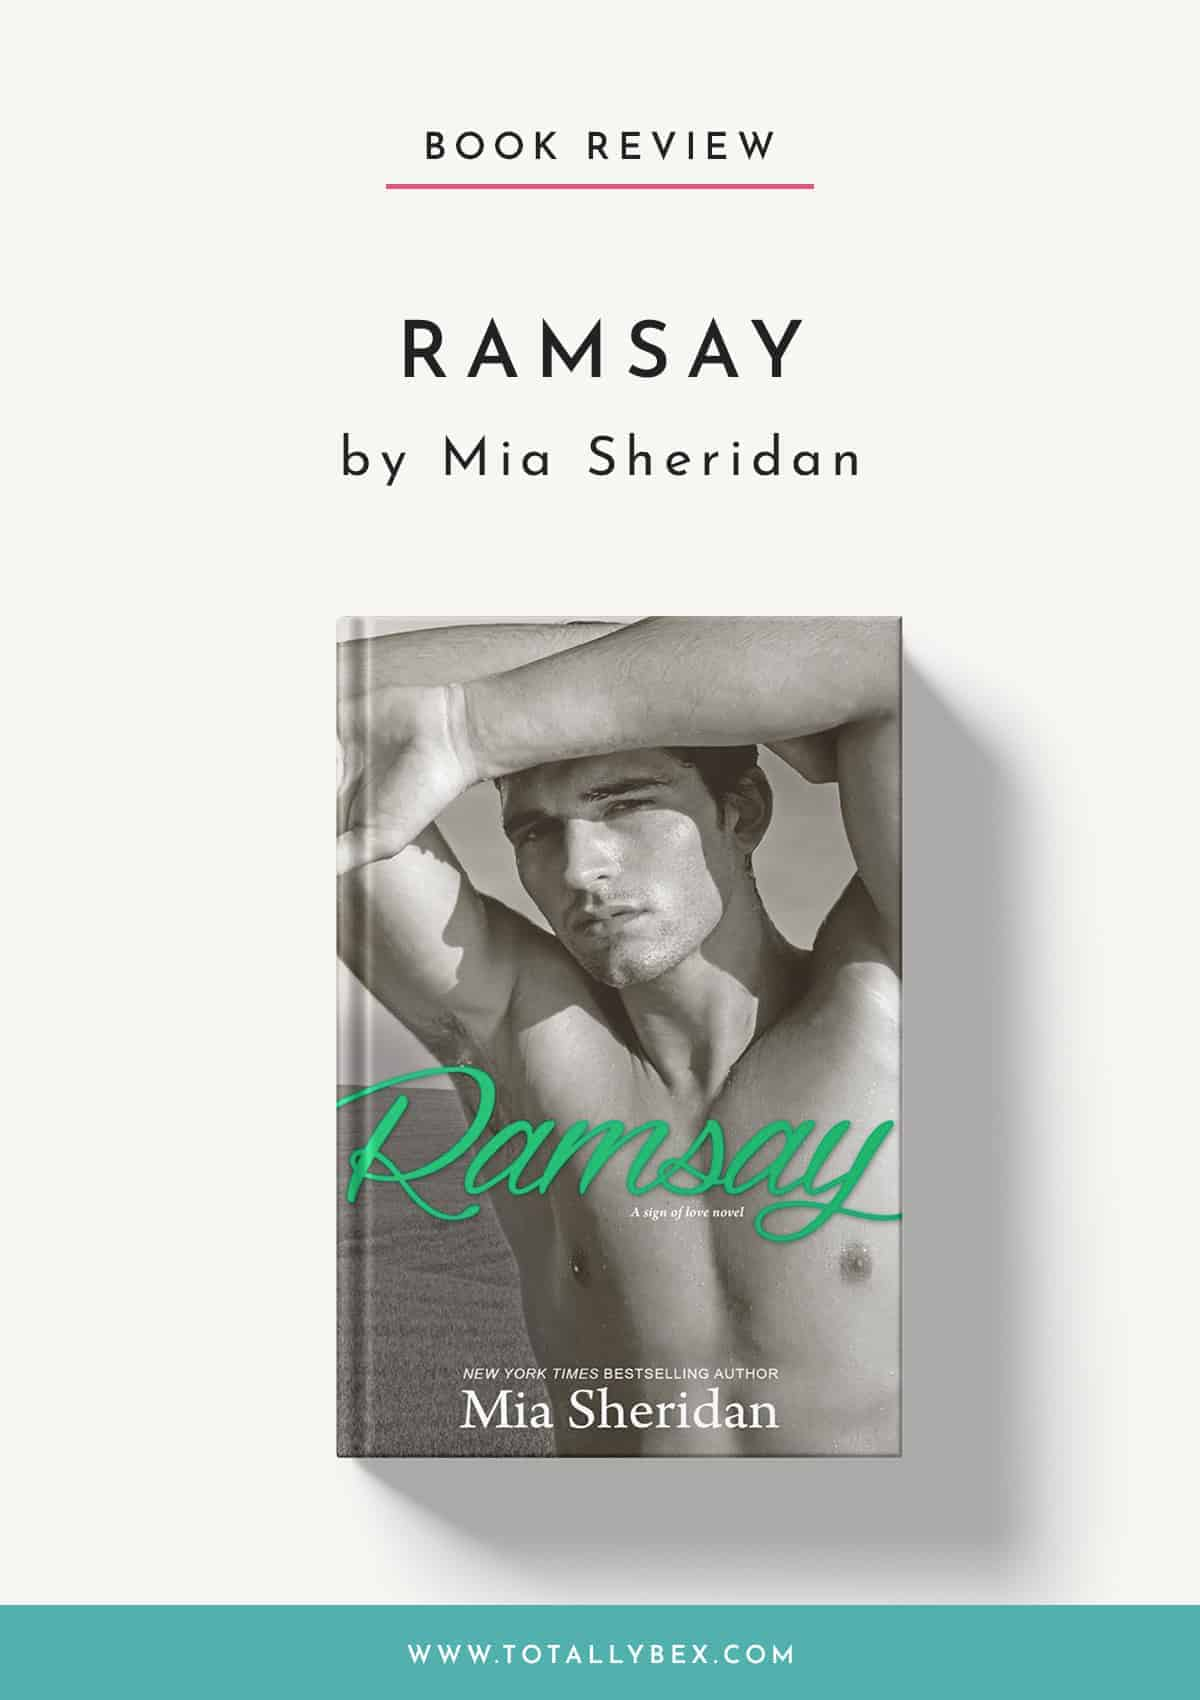 Ramsay by Mia Sheridan-Book Review